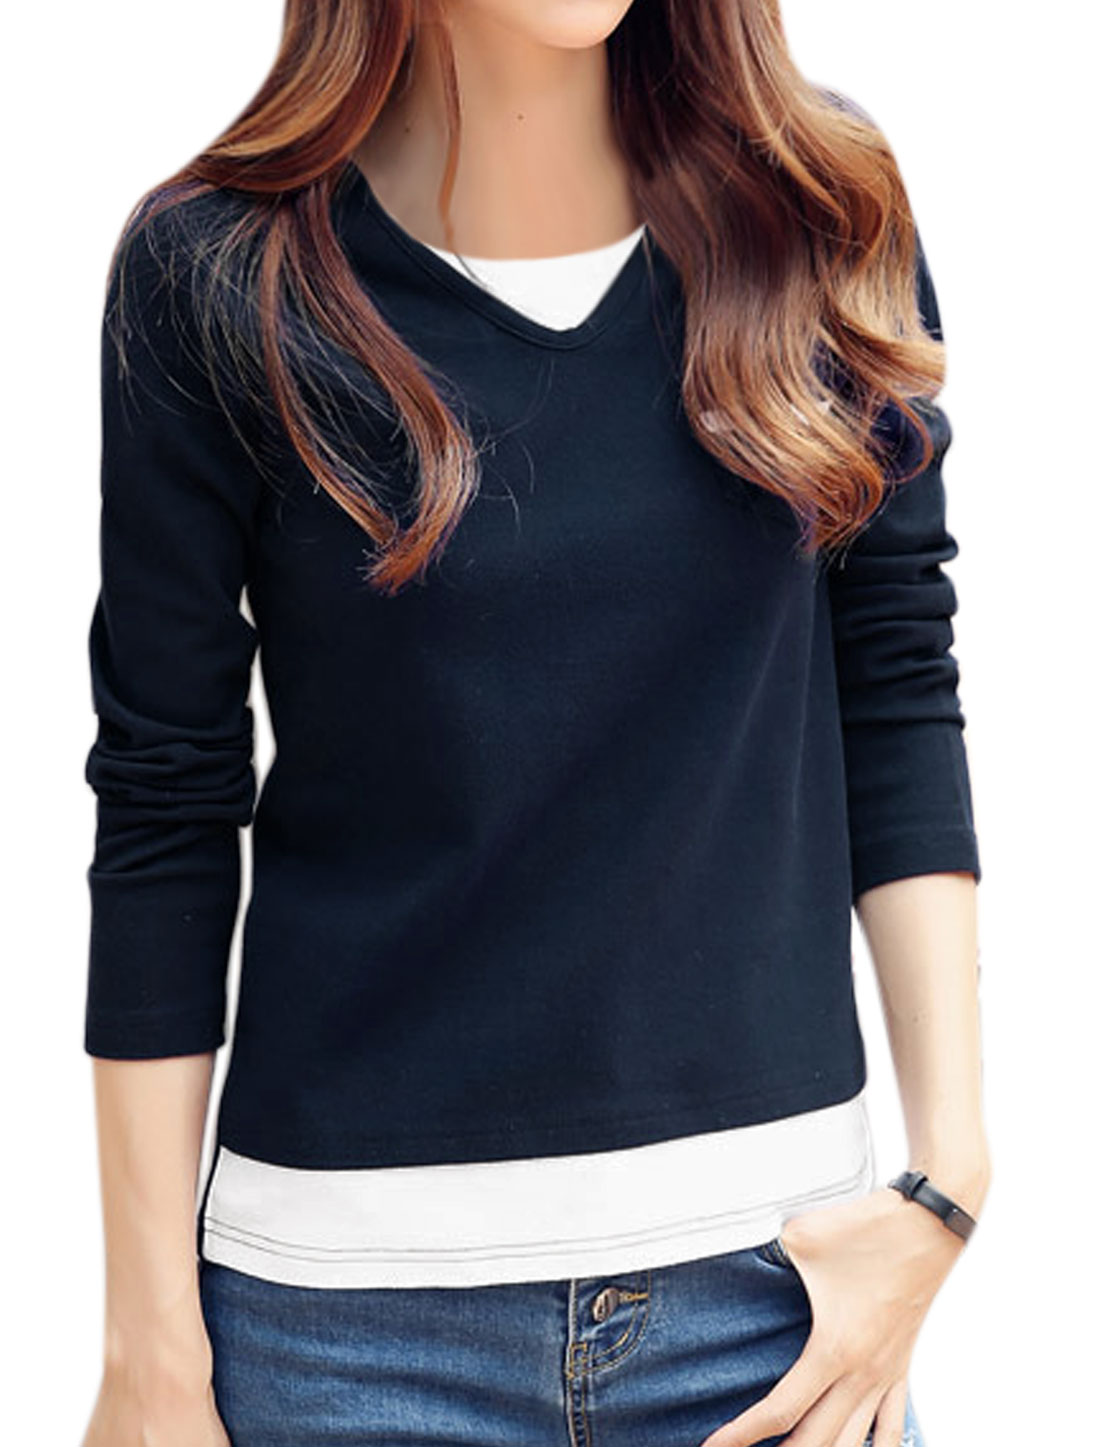 Lady Round Neck Long Sleeves Contrast Color Layered Tee Shirt Blue XS